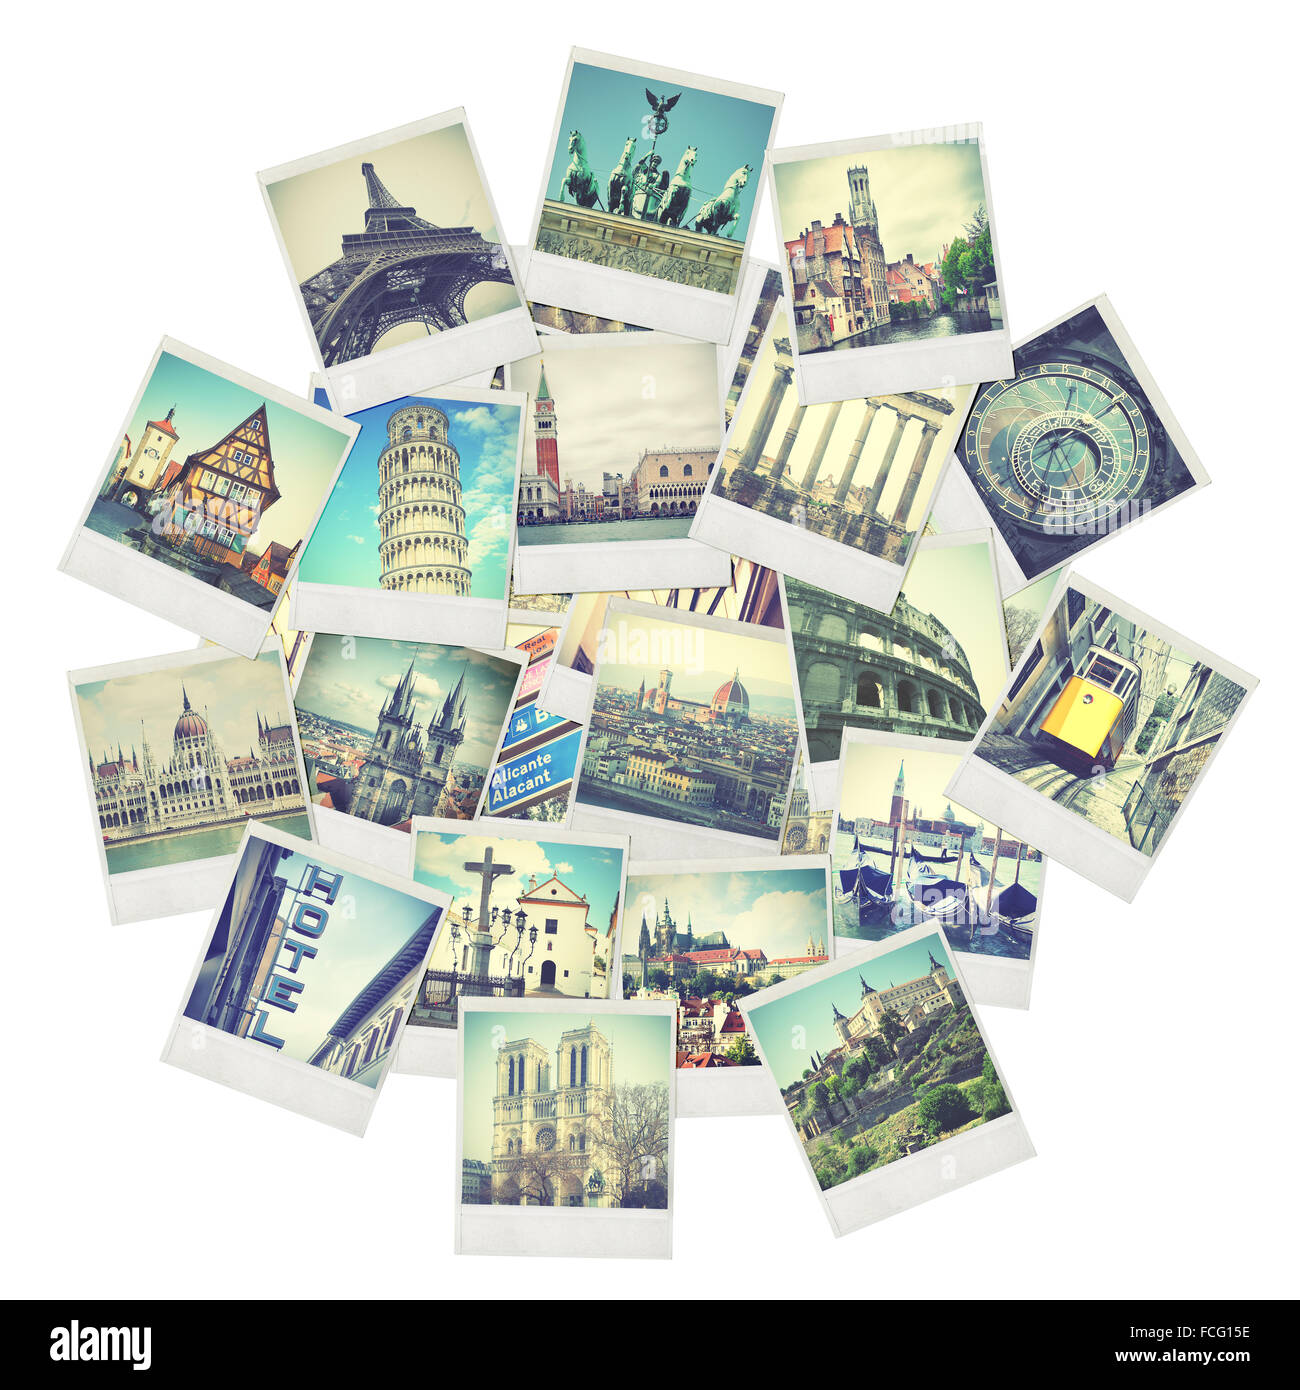 Old instant travel photos of Europe - Stock Image